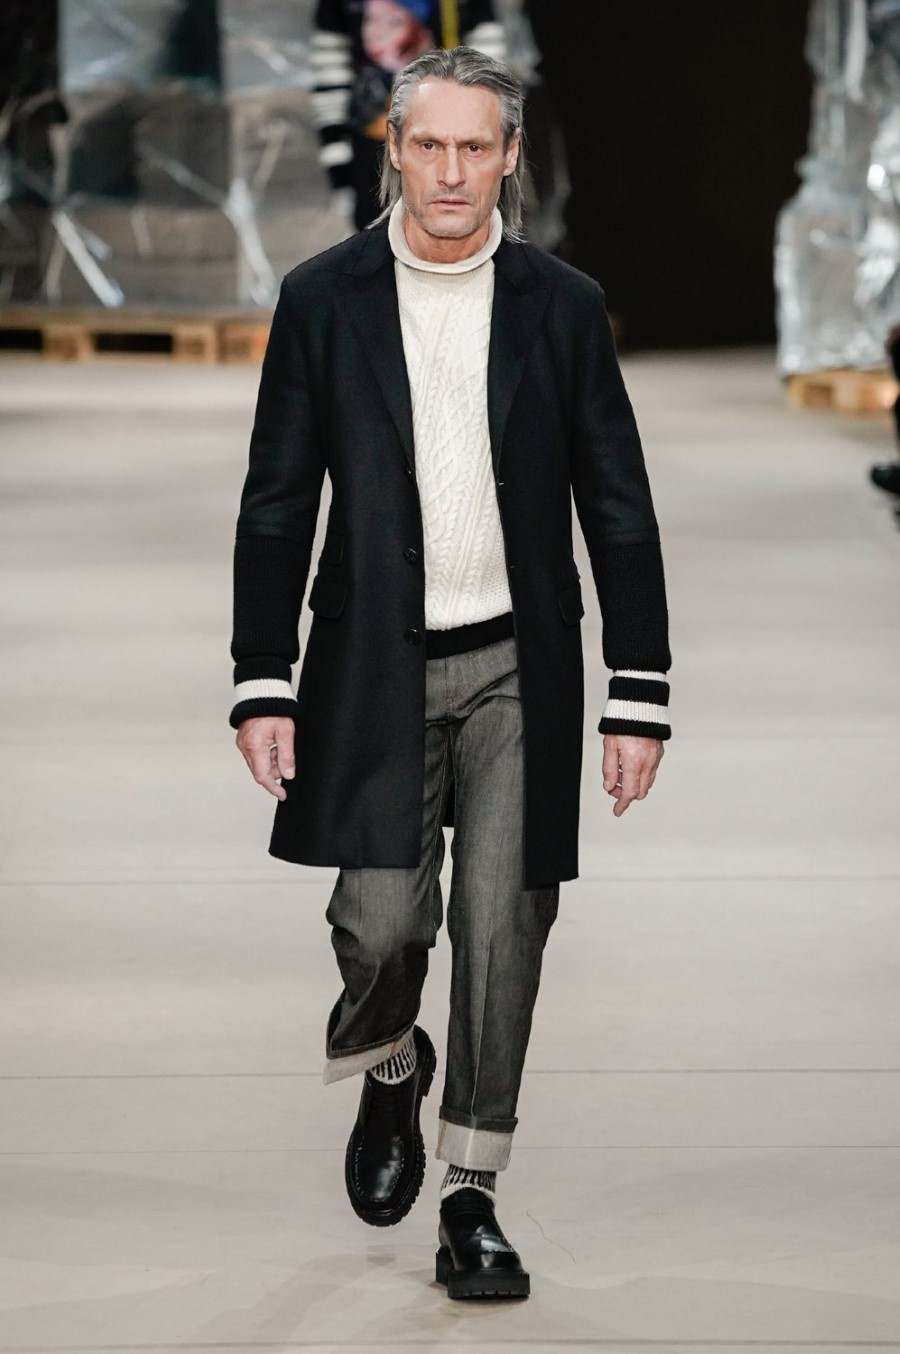 Neil Barrett - Fall Winter 2020 - Milano Fashion Week Men'sNeil Barrett - Fall Winter 2020 - Milano Fashion Week Men's